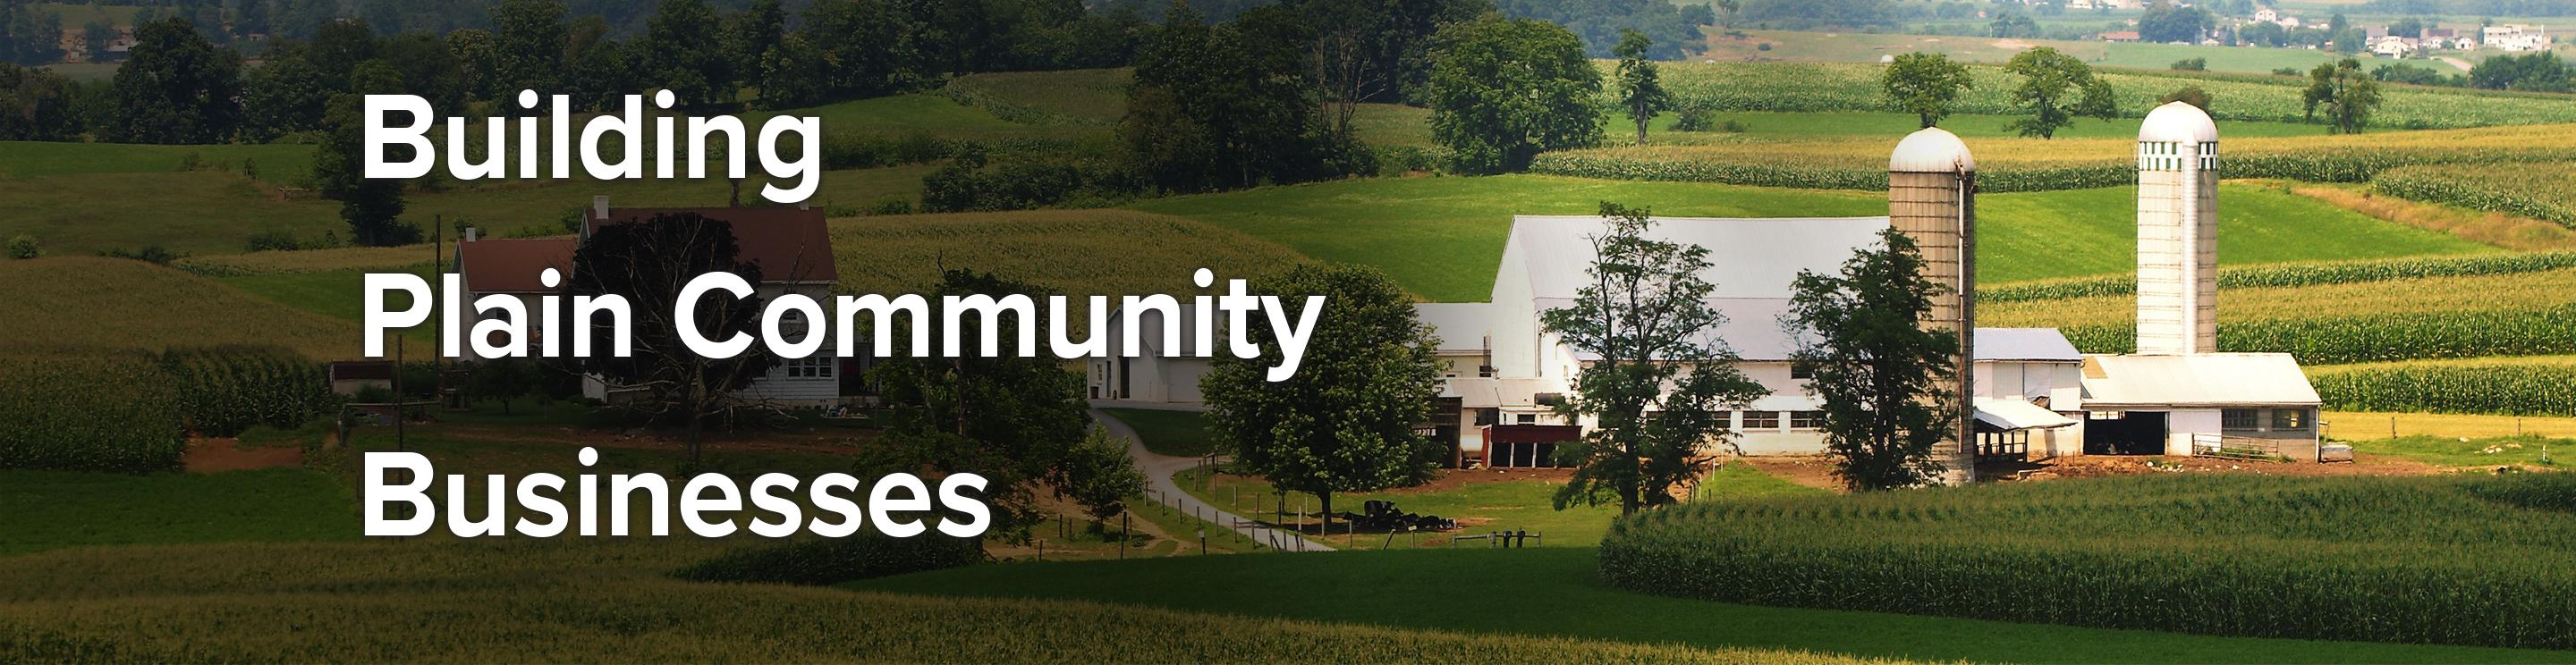 Building Plain Community Businesses - A picture of farmland